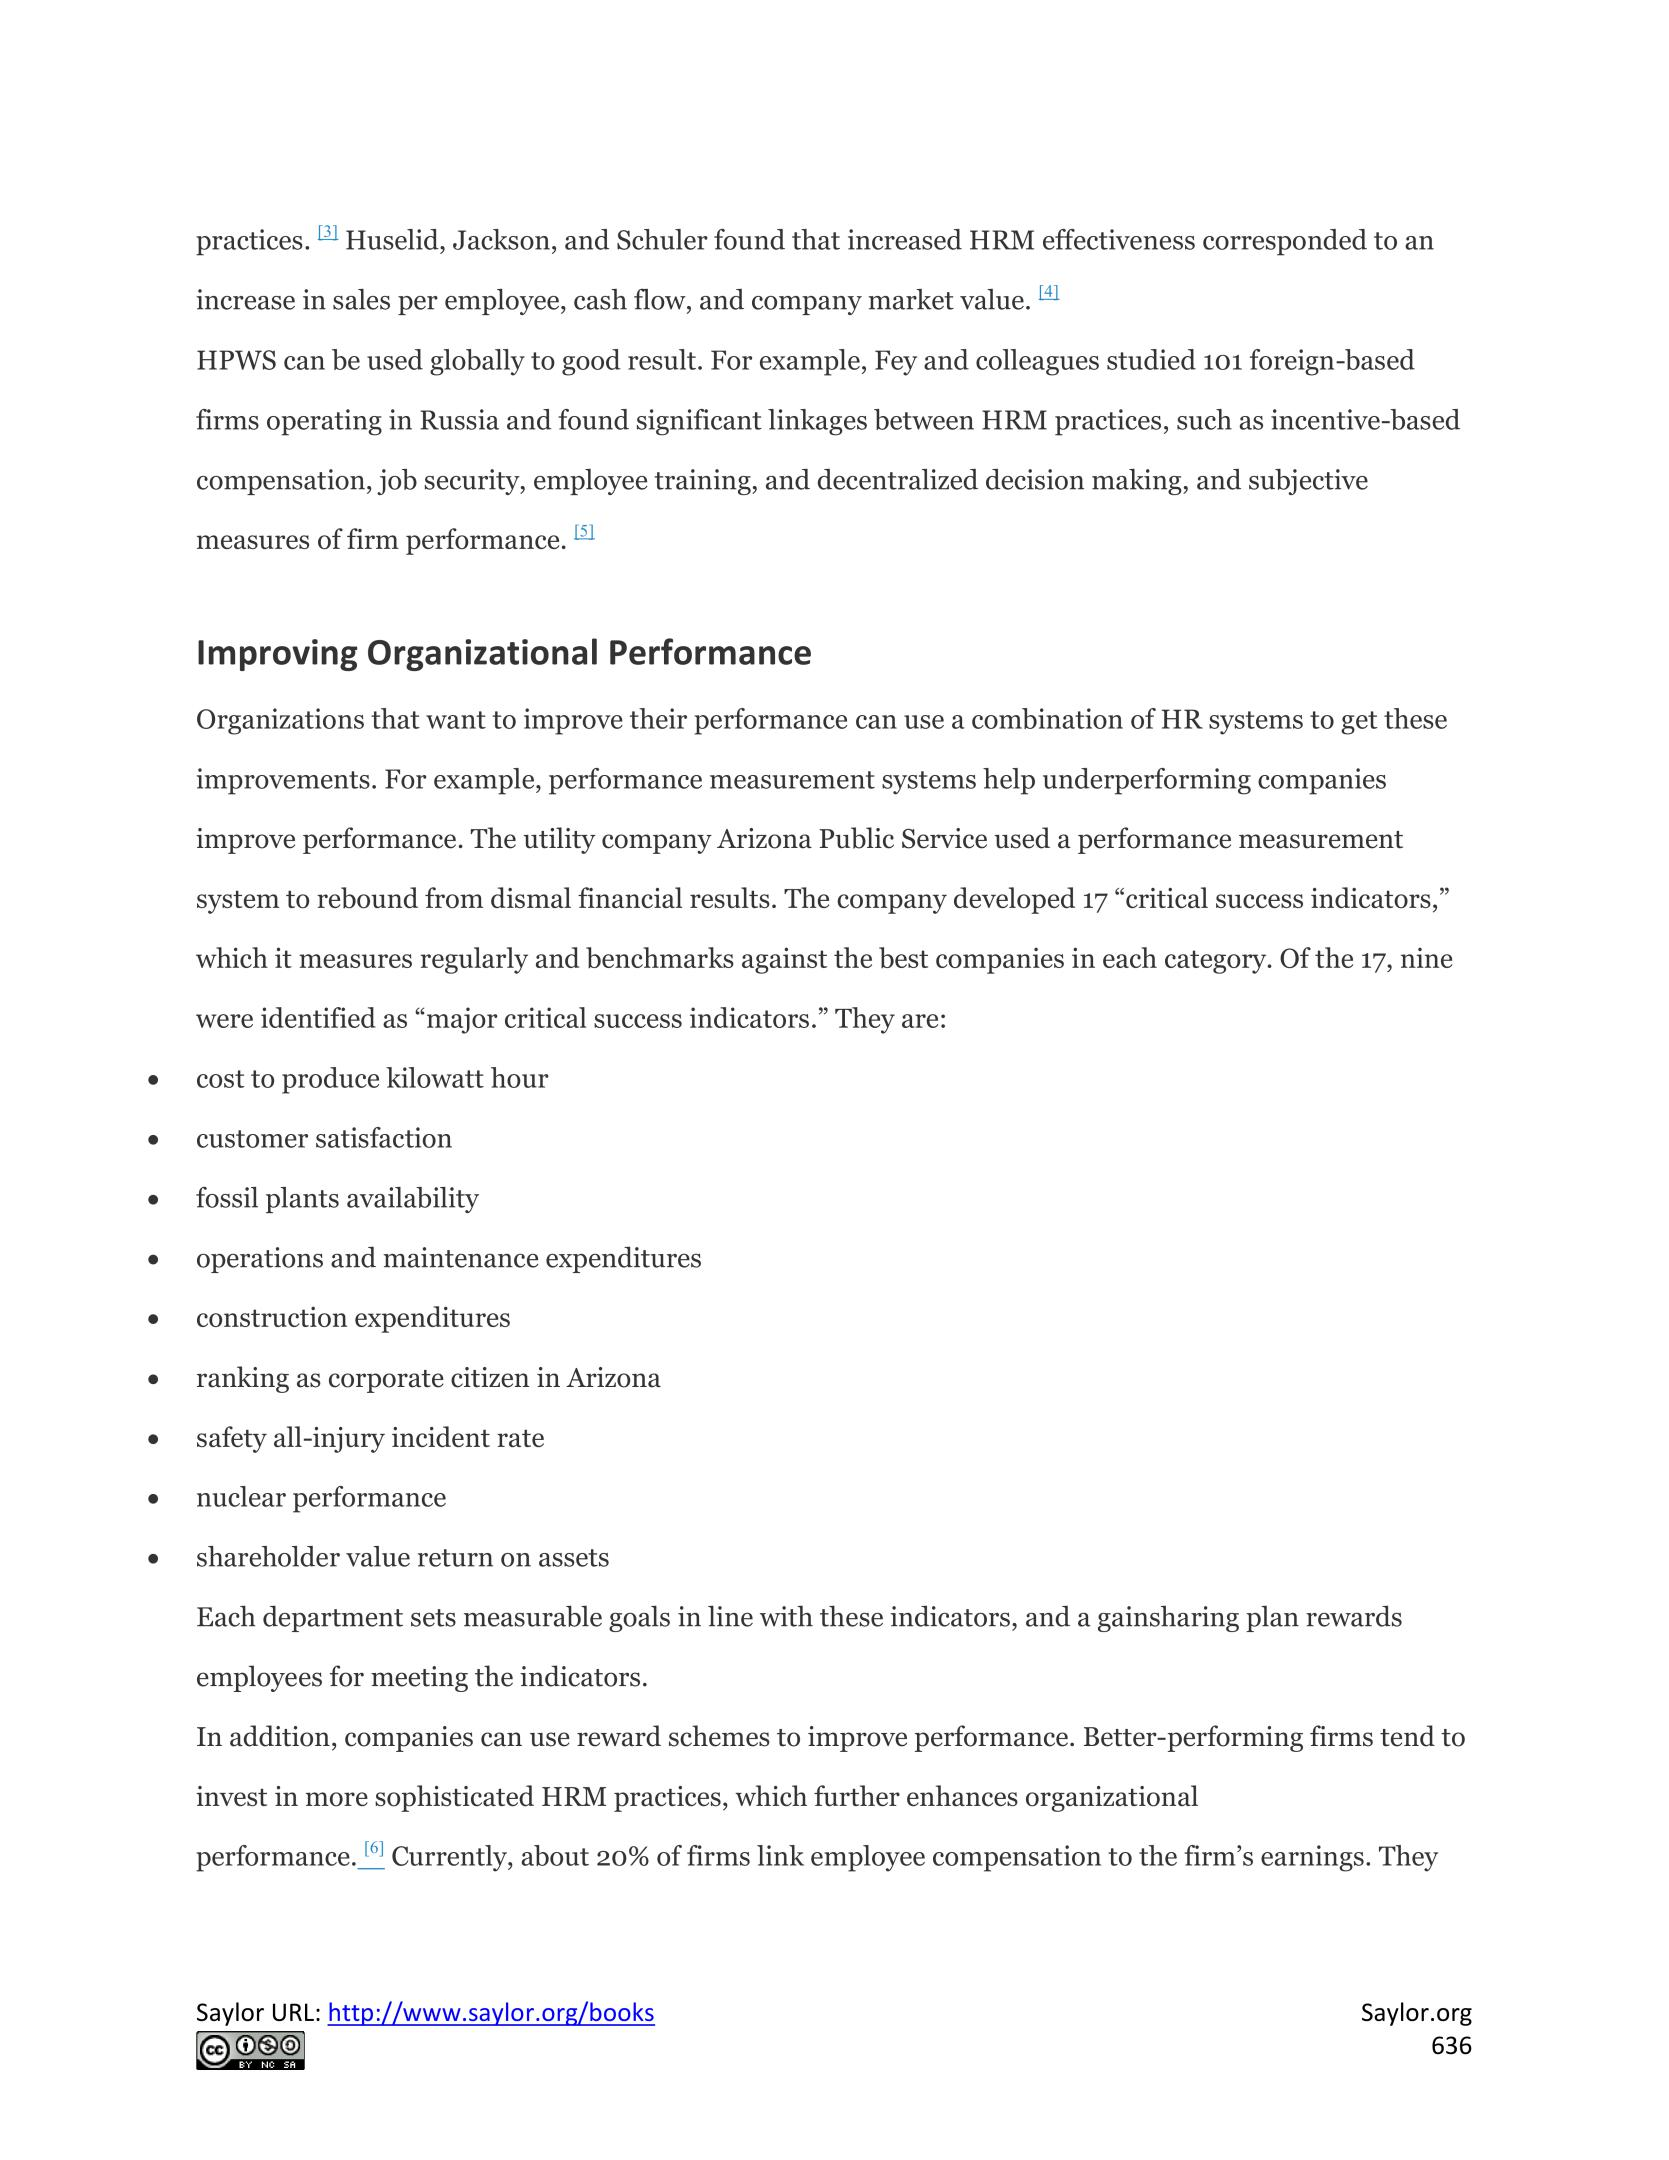 hrm practice and firm performance Understanding hrm-firm performance linkages: system strength can be seen to overarch the relationship between intended hrm practices to organizational performance.